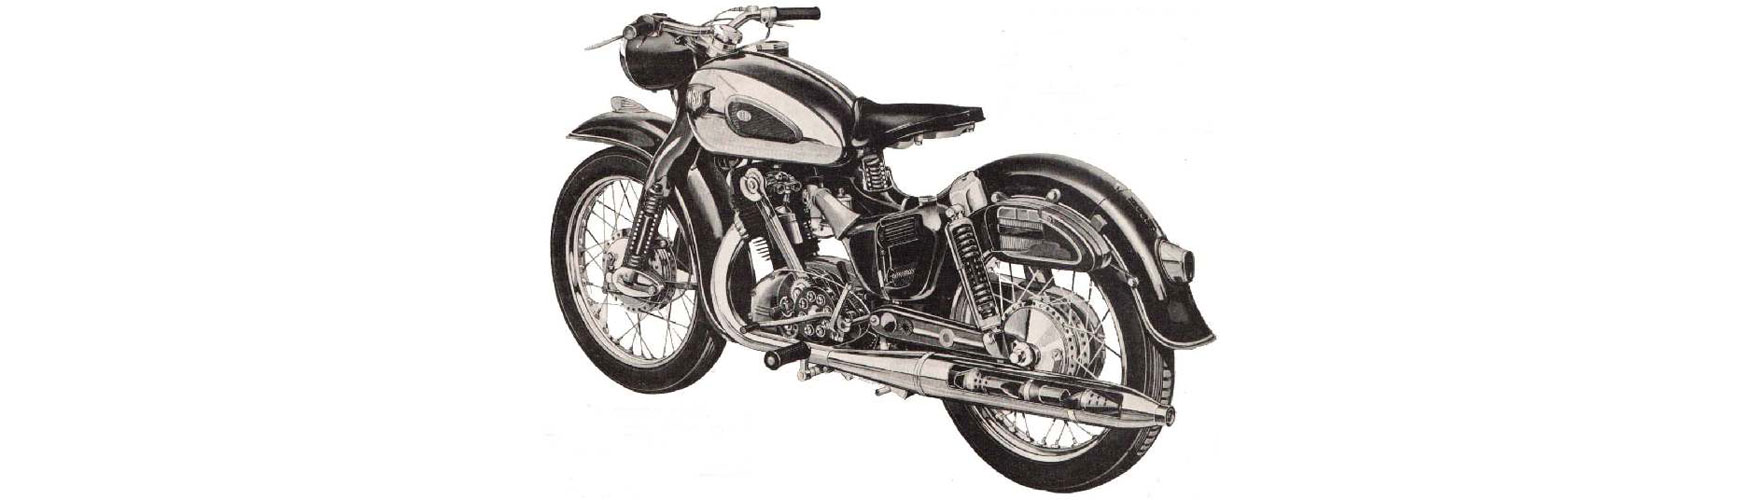 NSU Supermax information, manuals, pictures and parts catalog